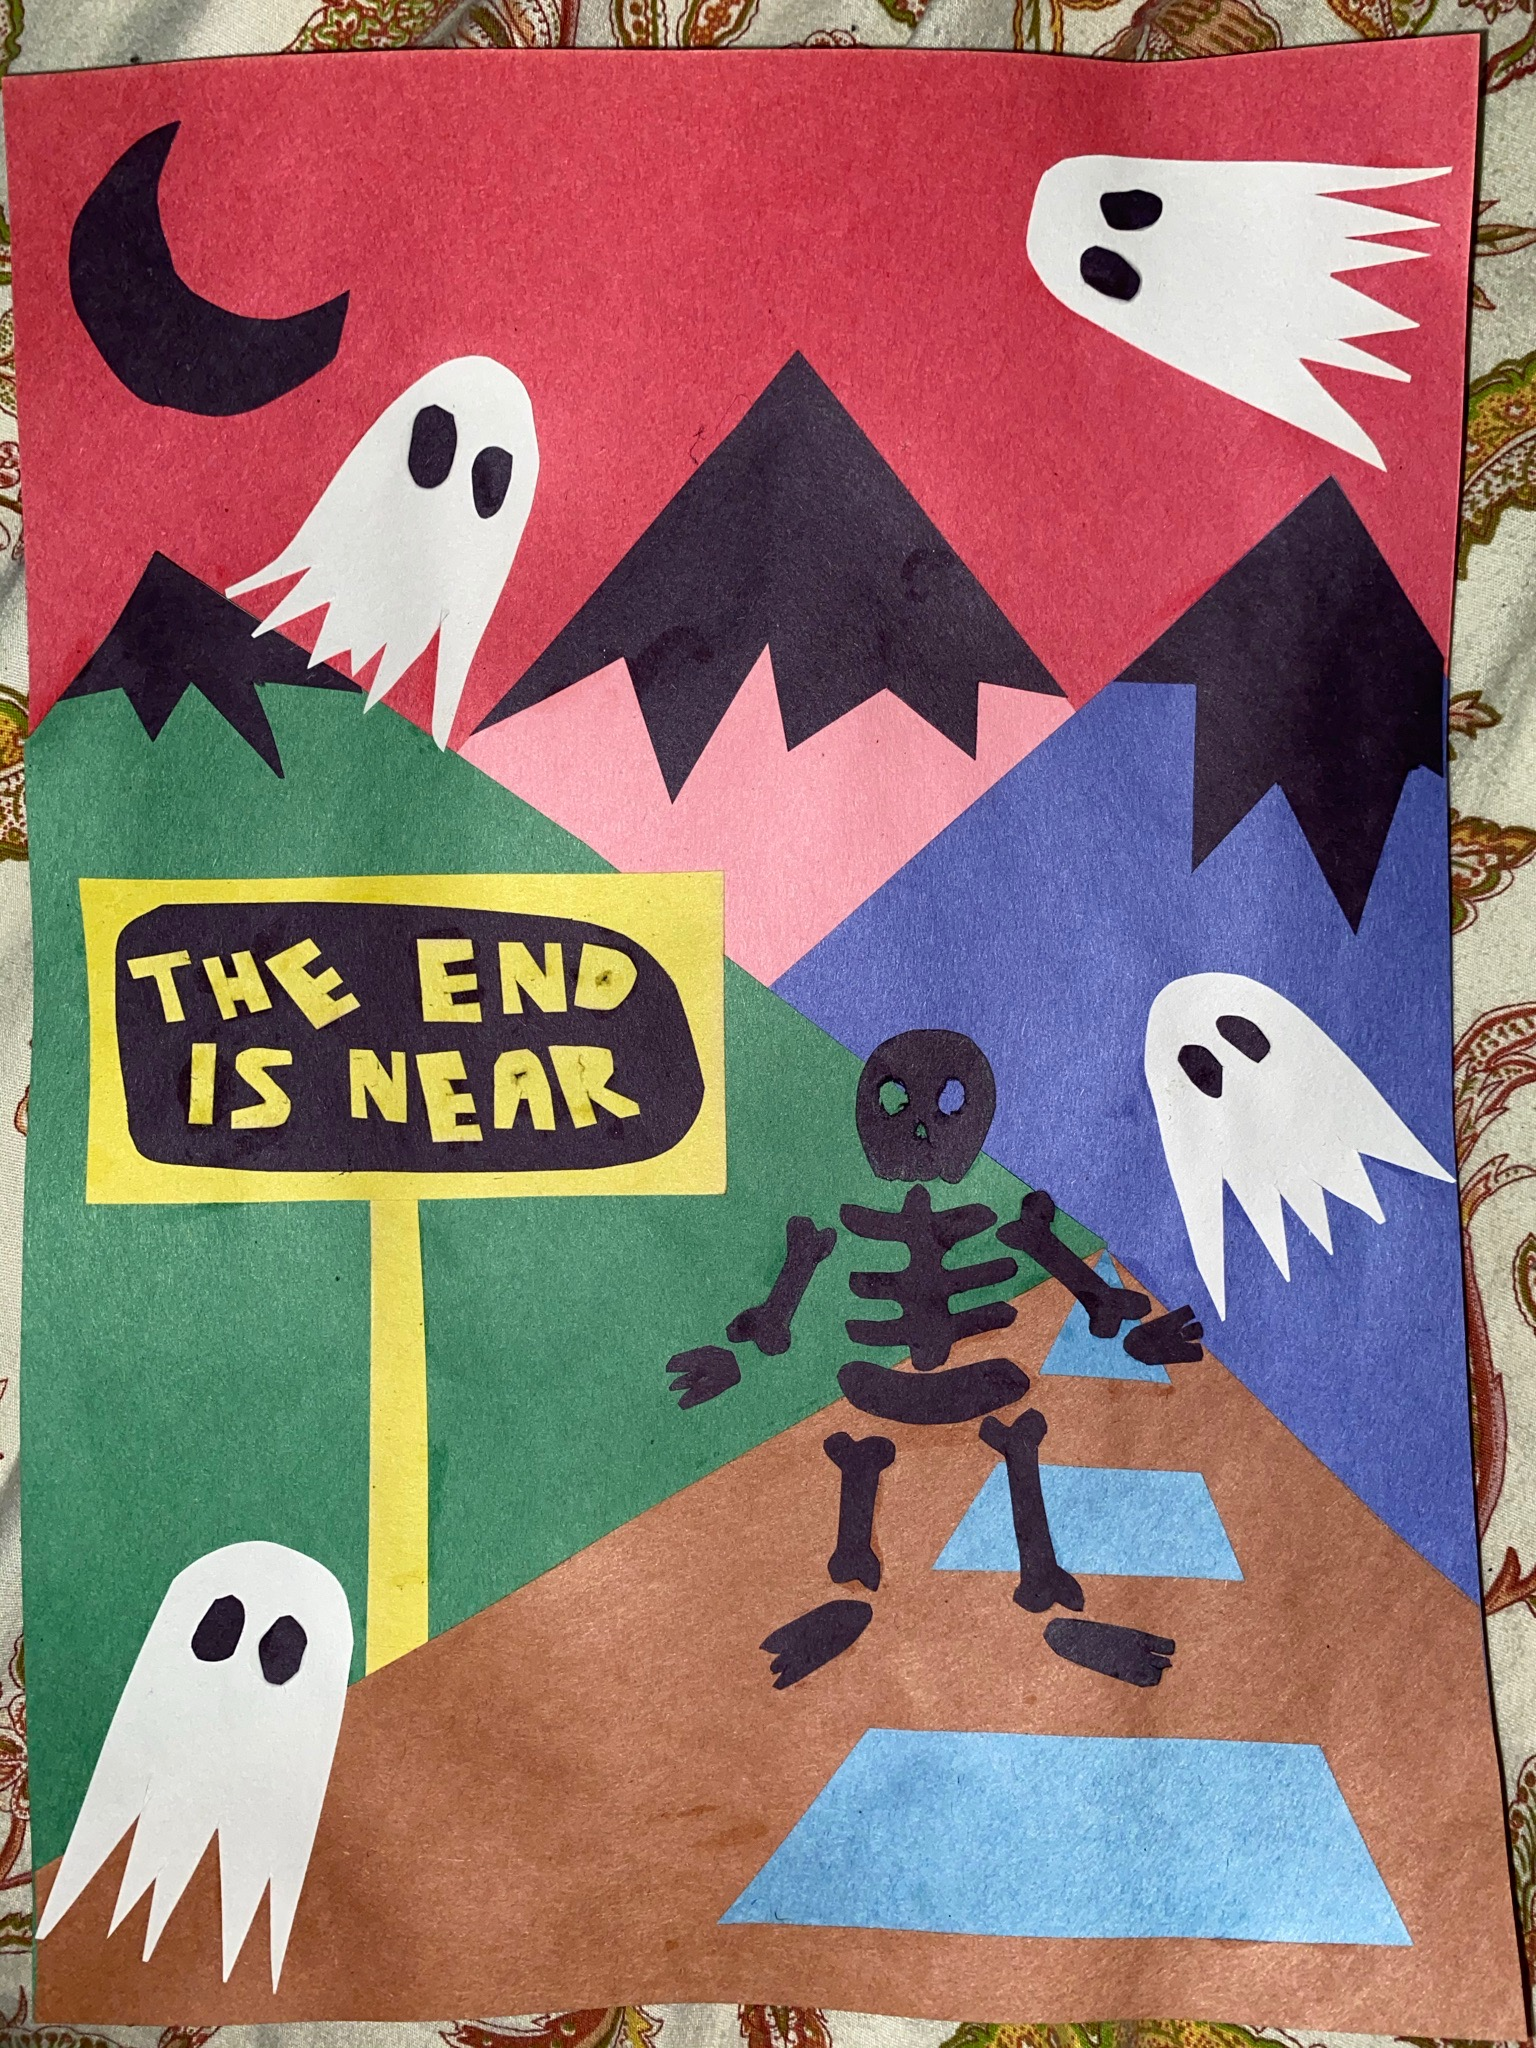 """Artwork created by the author of ghosts closing in on a skeleton, near a sign that says """"THE END IS NEAR,"""" inspired by """"I Know the End"""" by Phoebe Bridgers."""